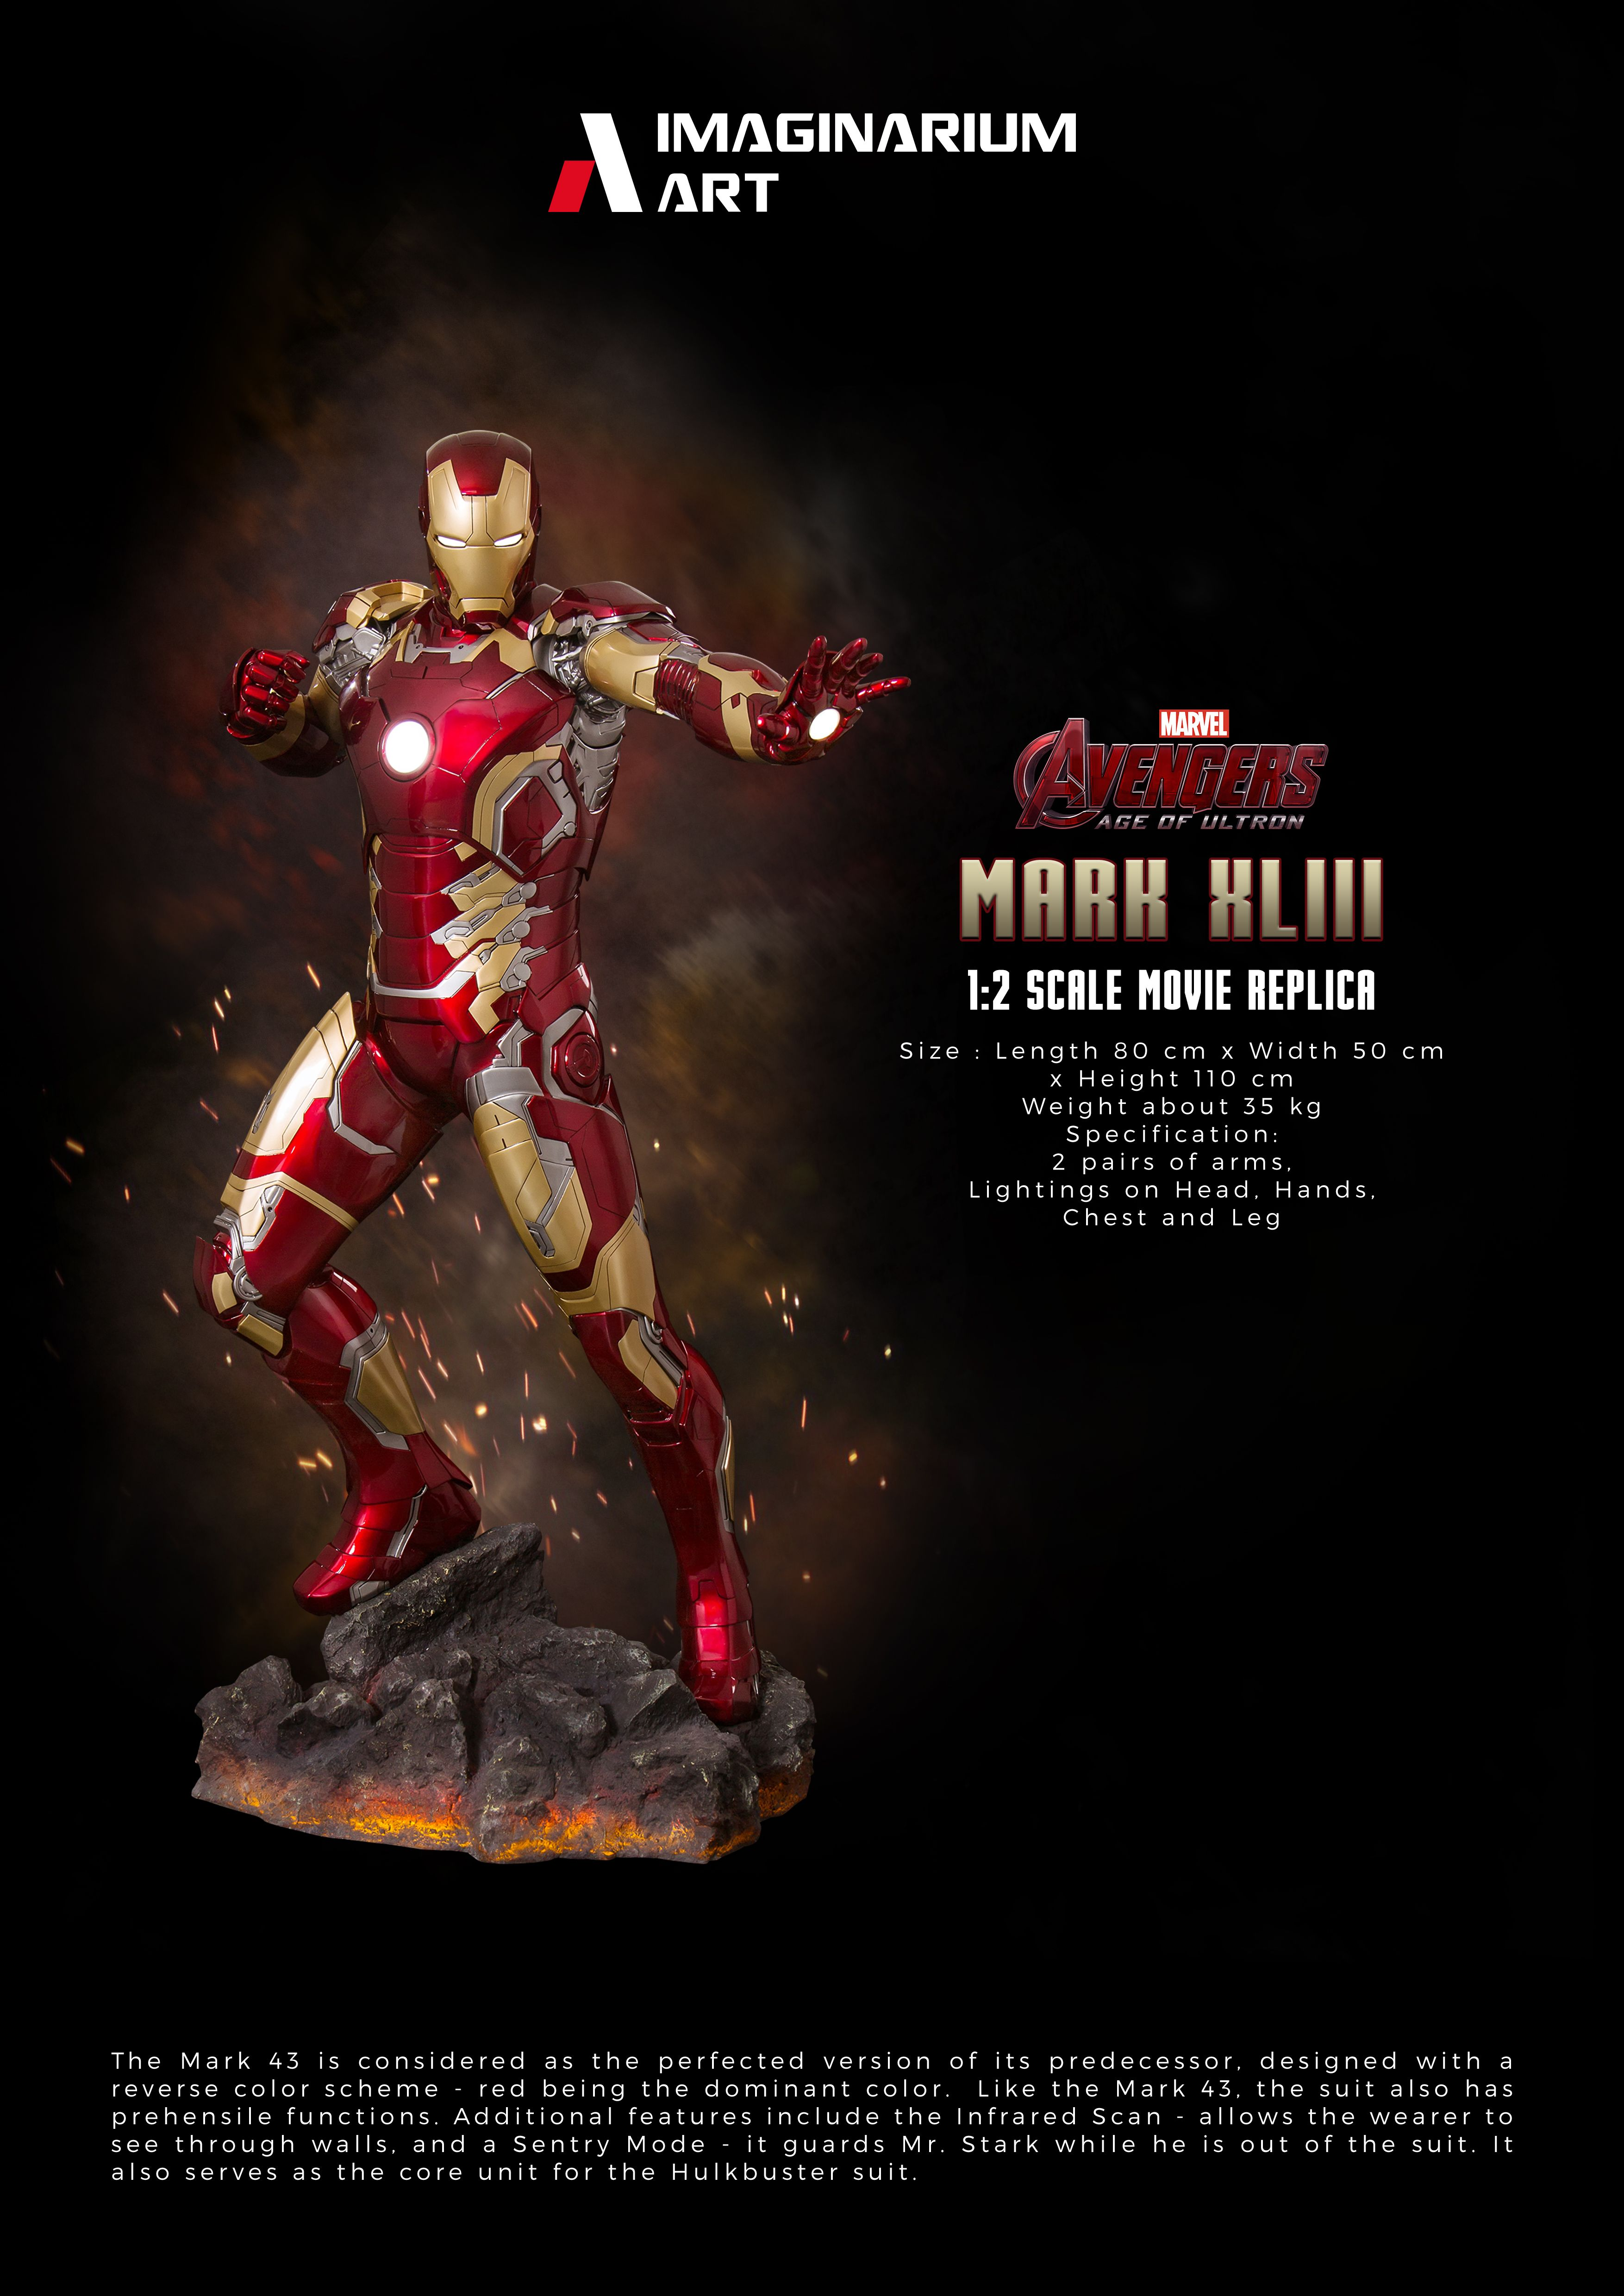 Iron Man Mark 43 1 2 By Imaginarium Art Art Movie Replica Statue